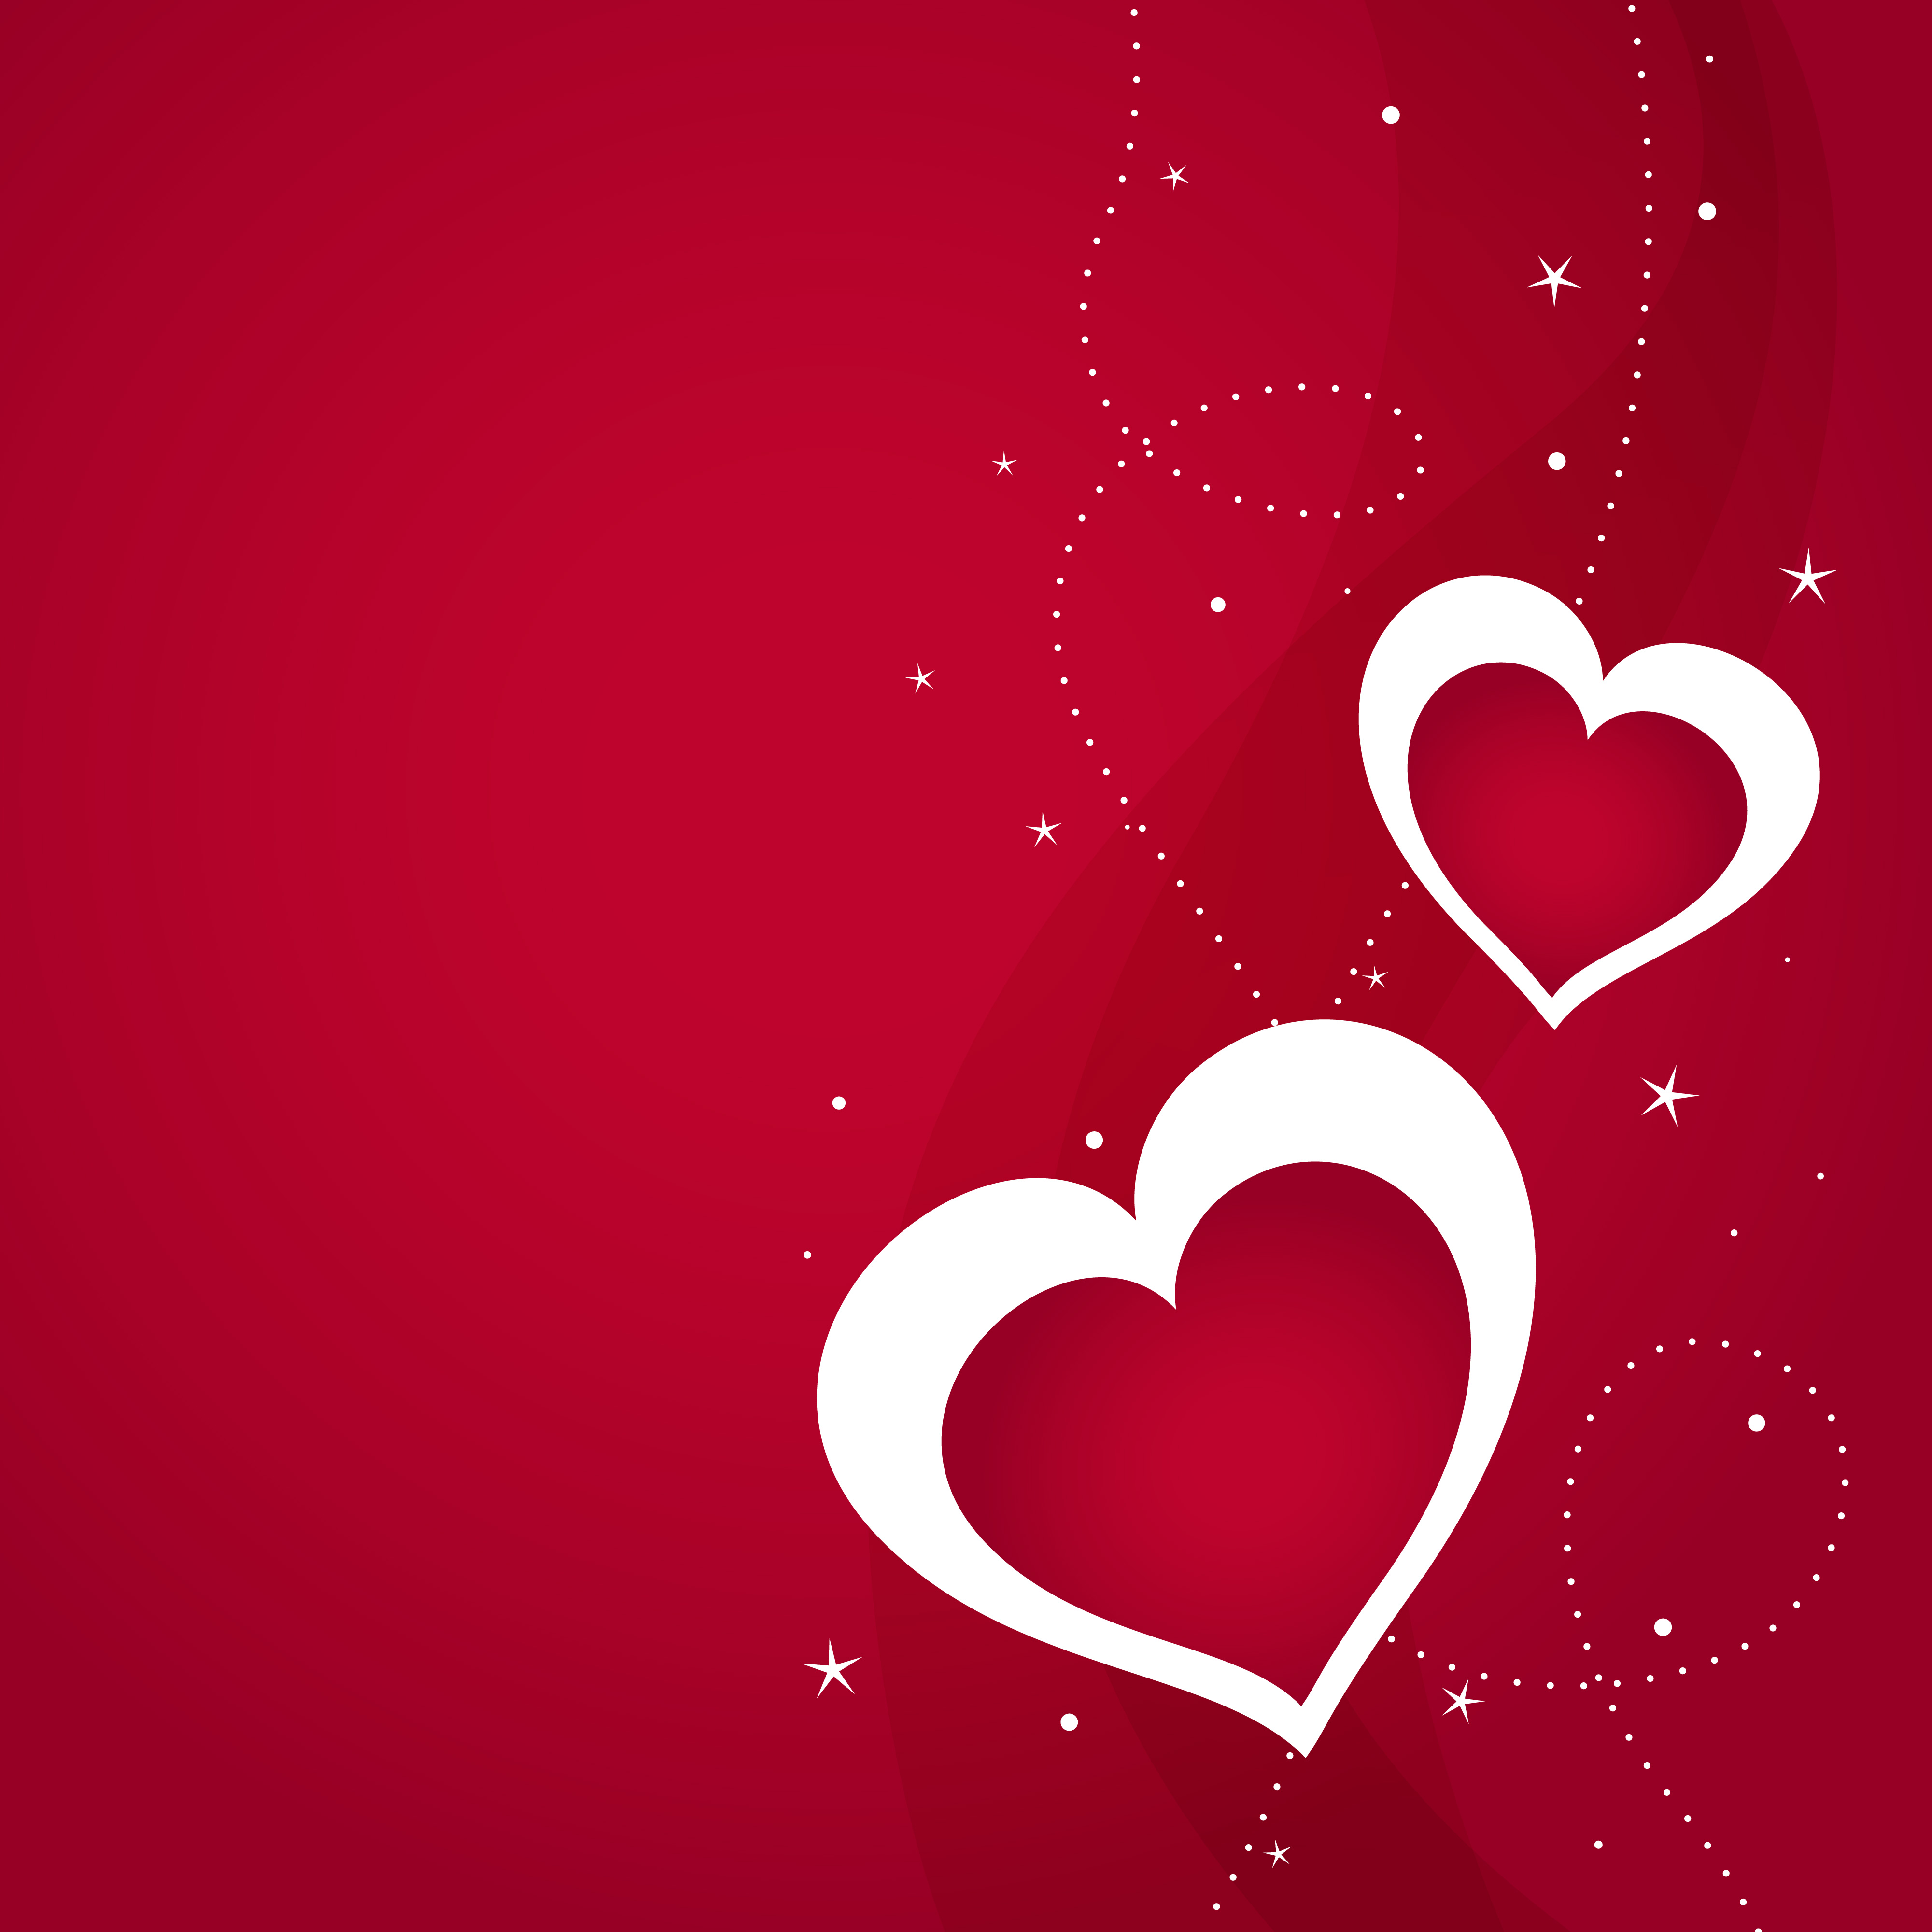 Happy valentines day greeting background download free vector art stock graphics images - Background for valentine pictures ...